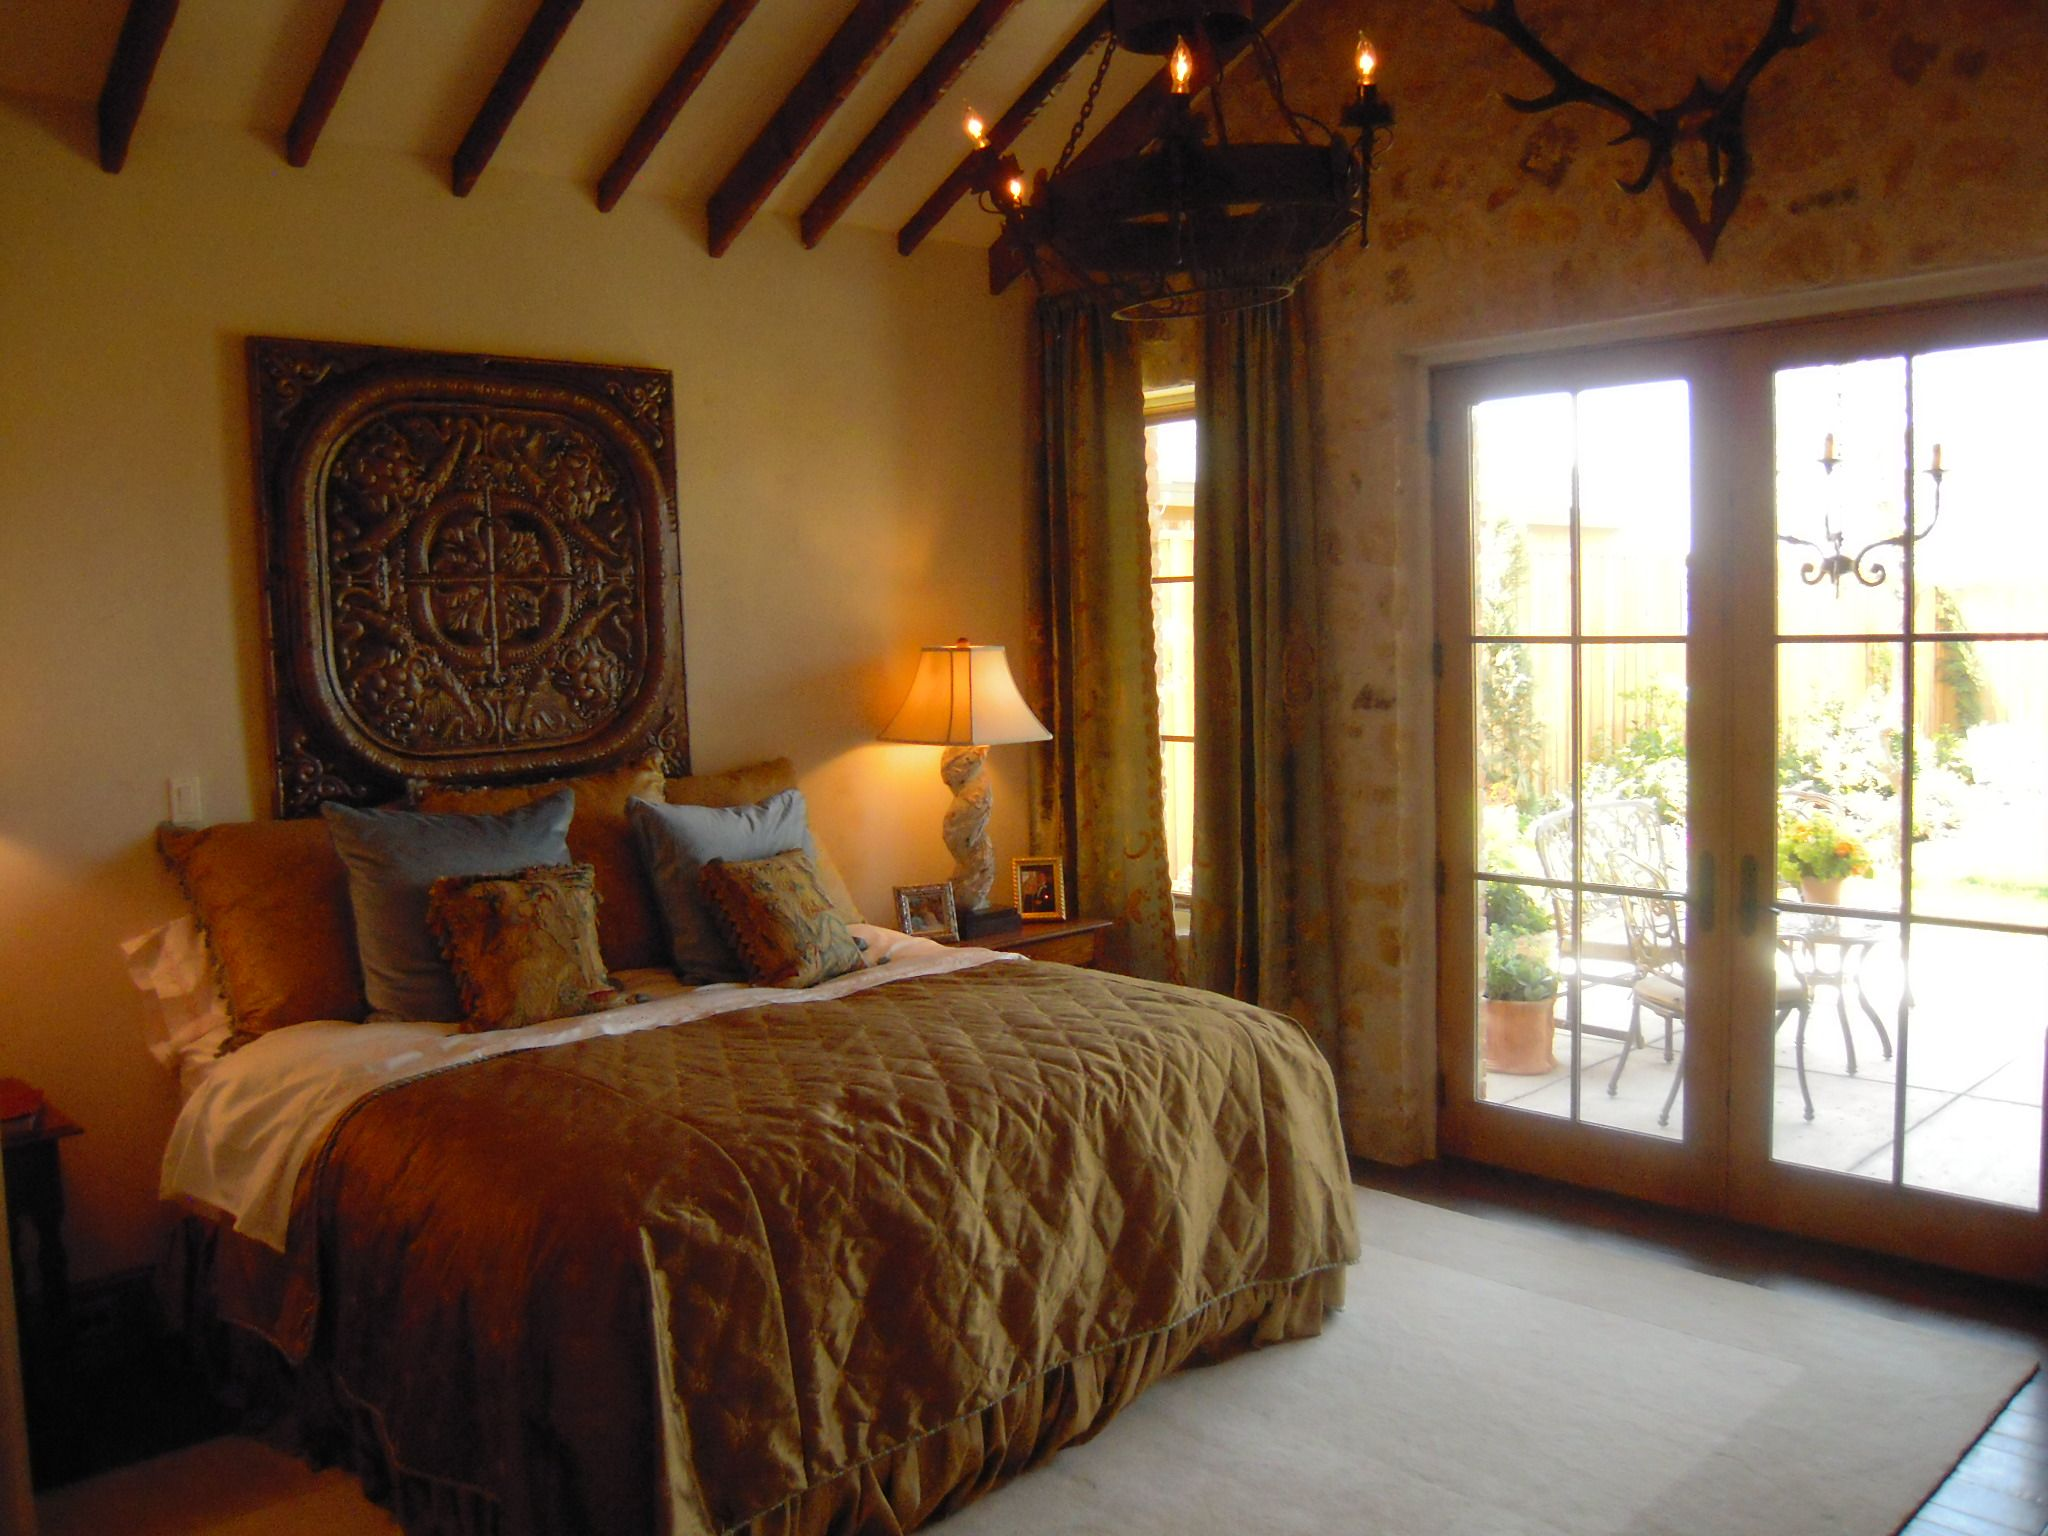 Texas Tuscan style bedroom | Tuscan style bedrooms, Tuscan ...